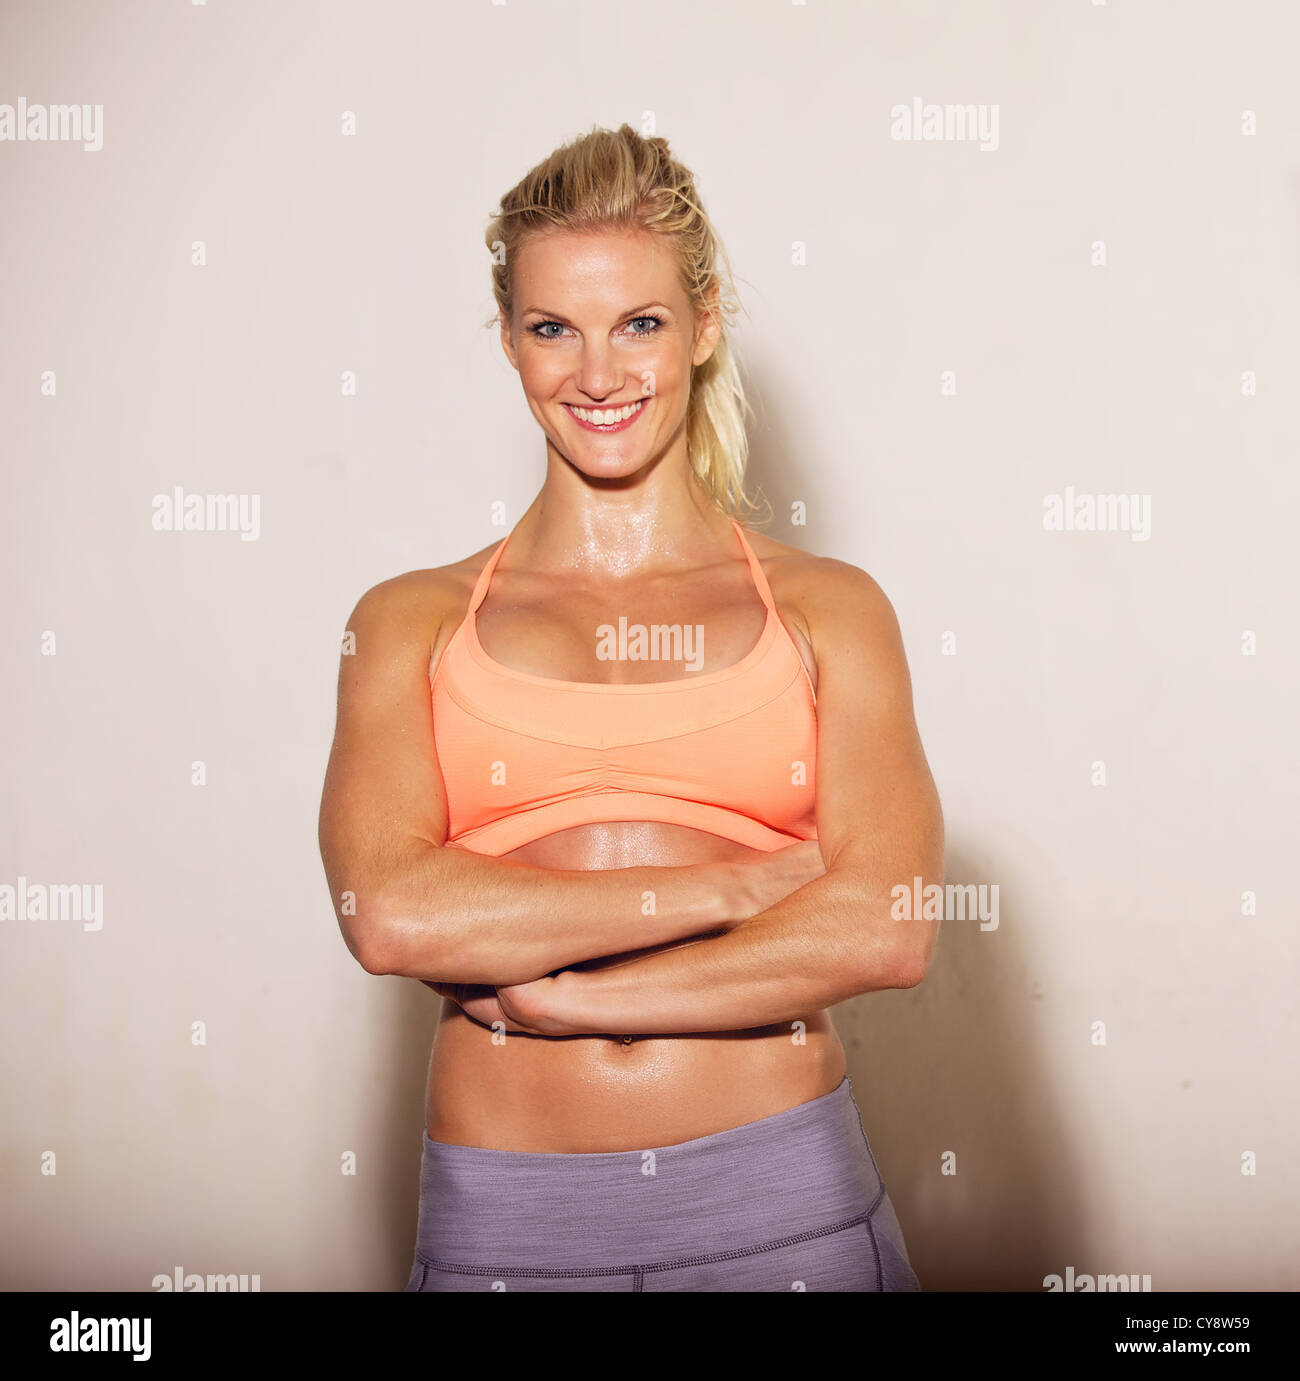 Smiling woman with arms crossed at the gym - Stock Image